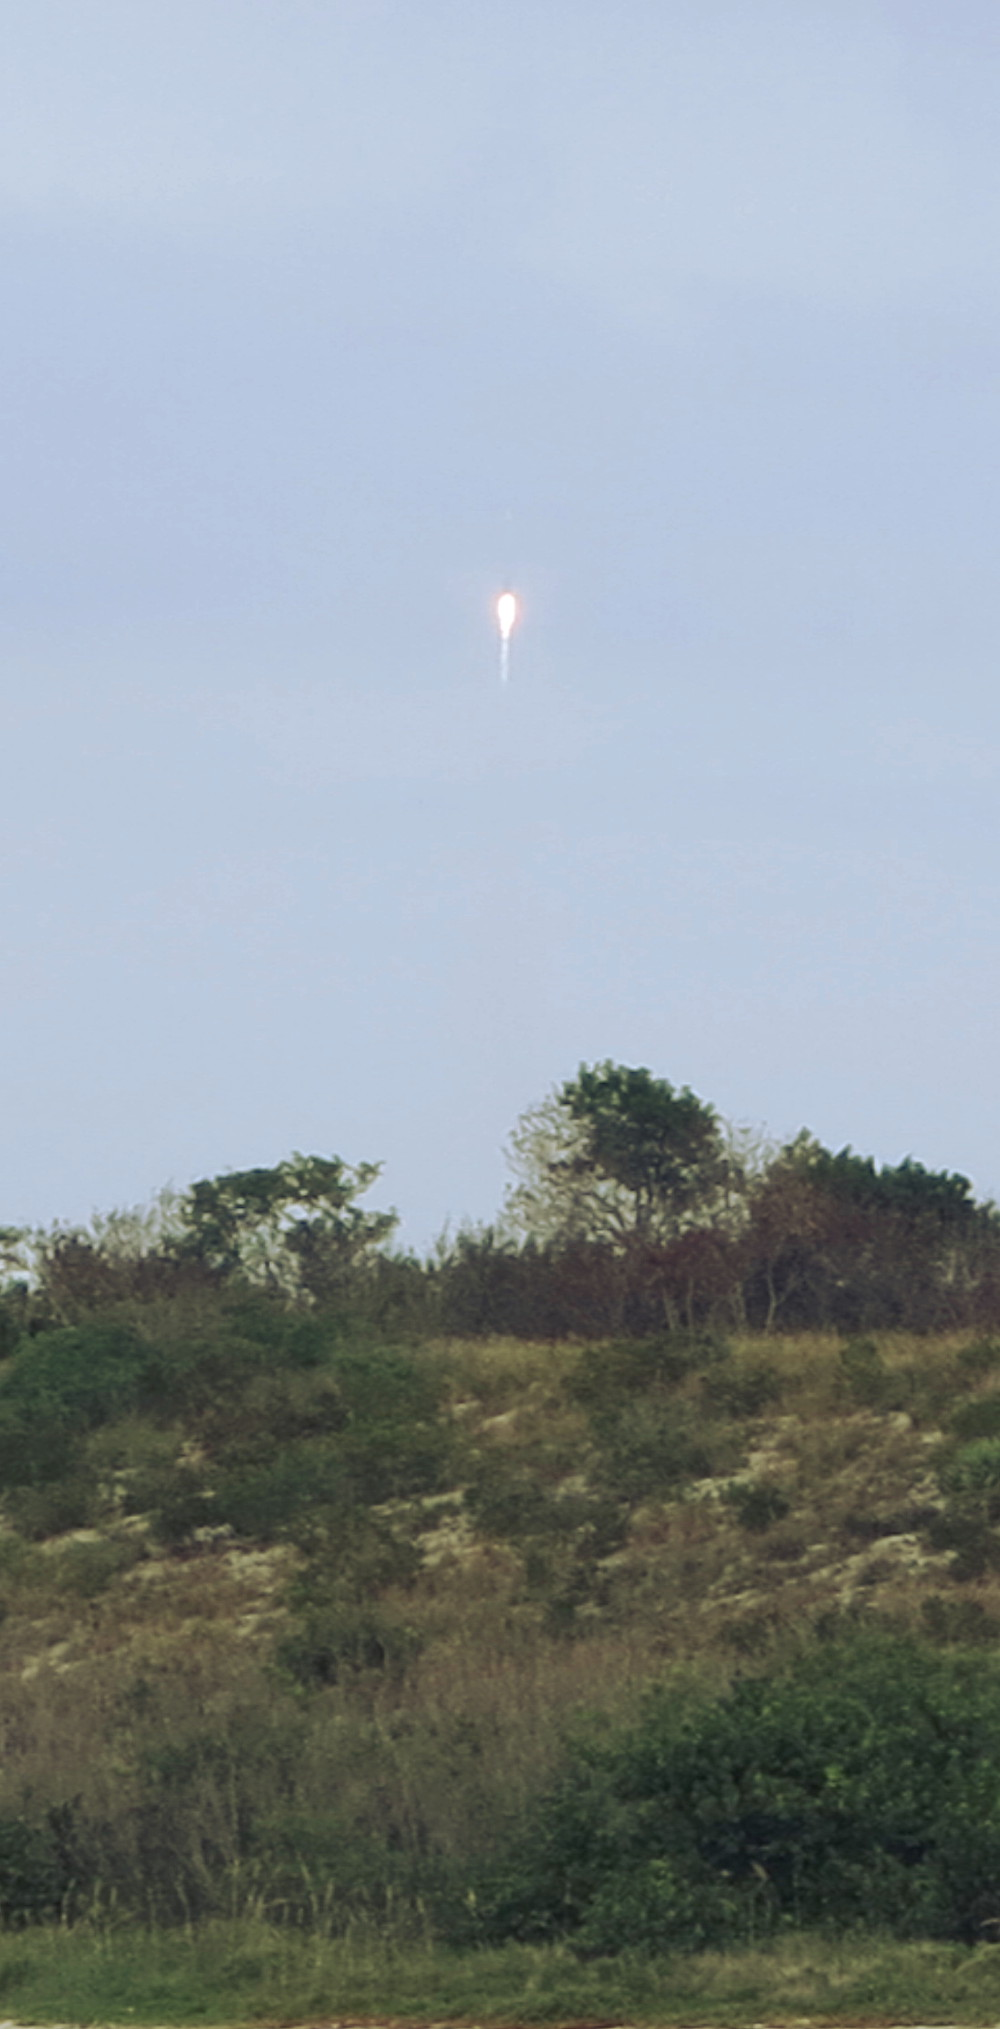 Maven rocket lauches into the air at NASA